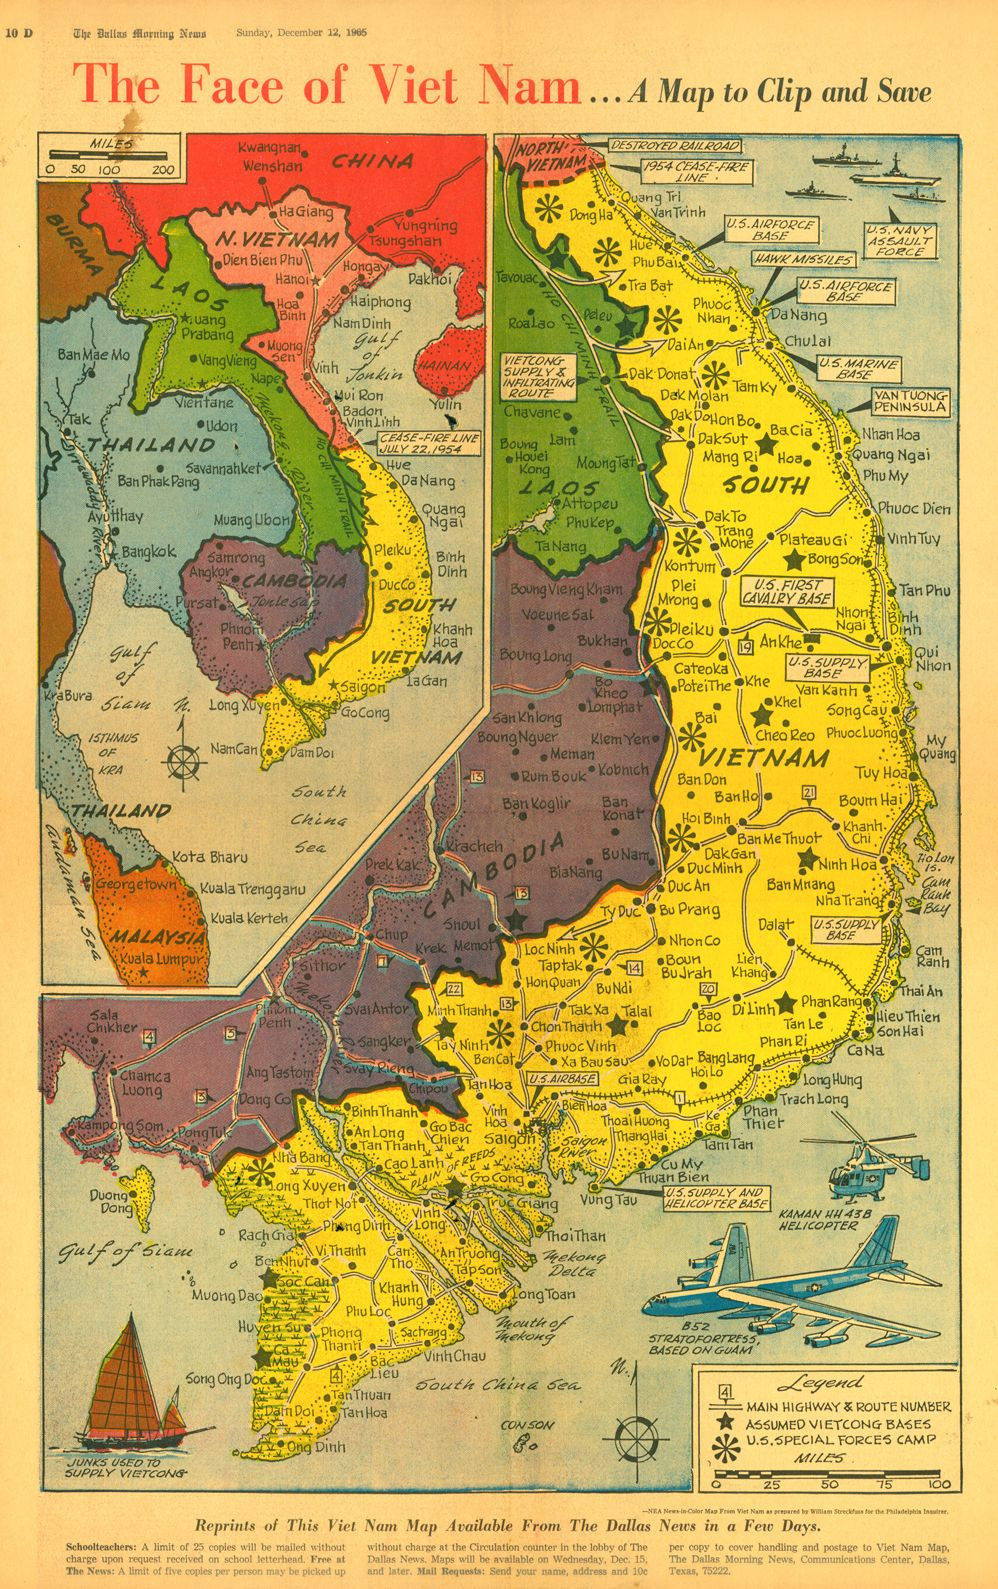 map of vietnam from 1965 Glen Tanner from Beyond the Moon was held captive in Cambodia Laos and Vietnam for 9 years Can he survive peace when he returns